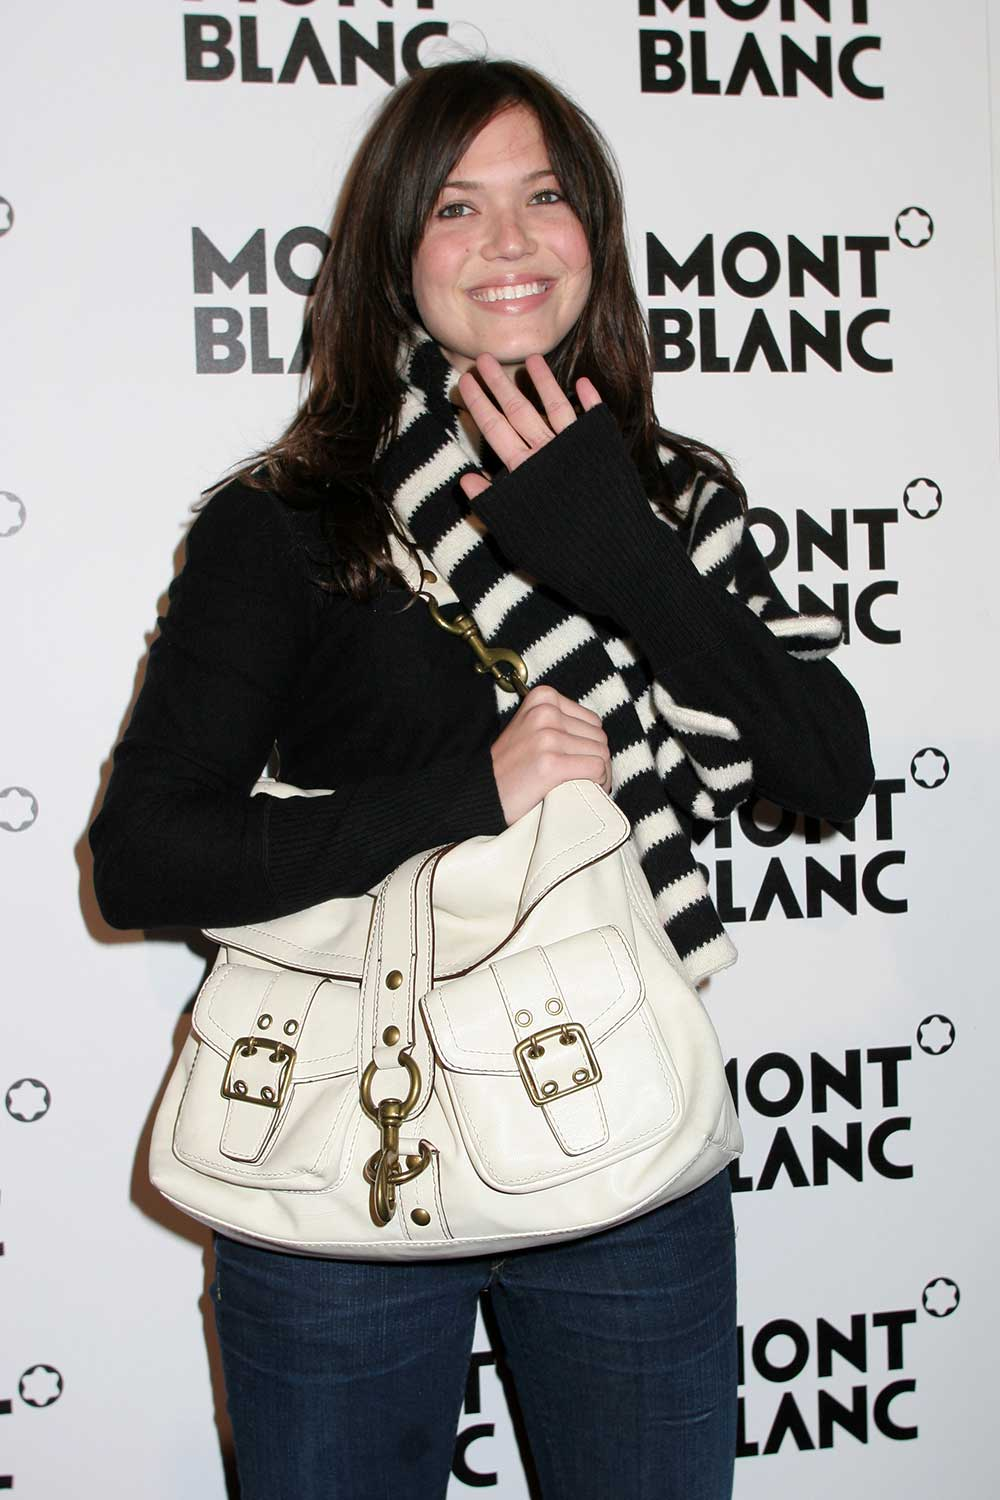 mont-blanc-production-event.jpg